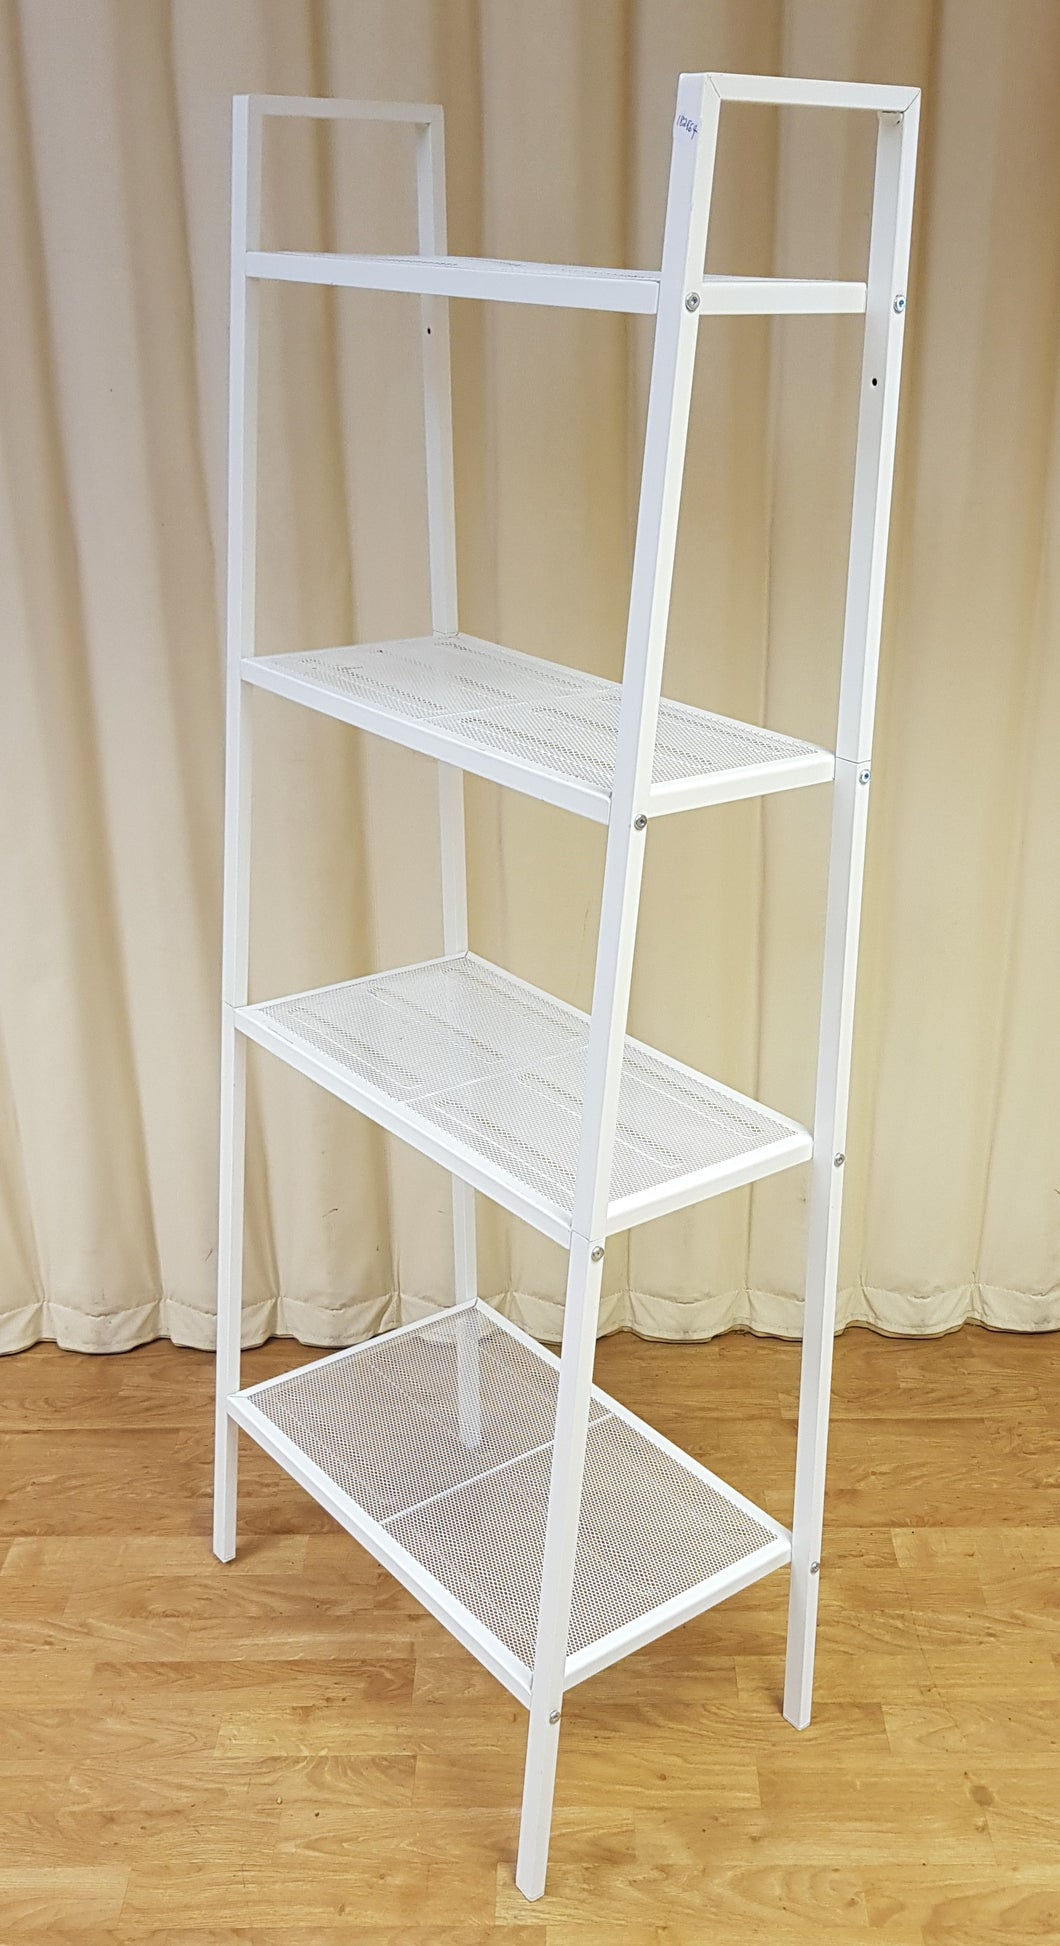 IKEA LERBERG White Metal Shelf Unit